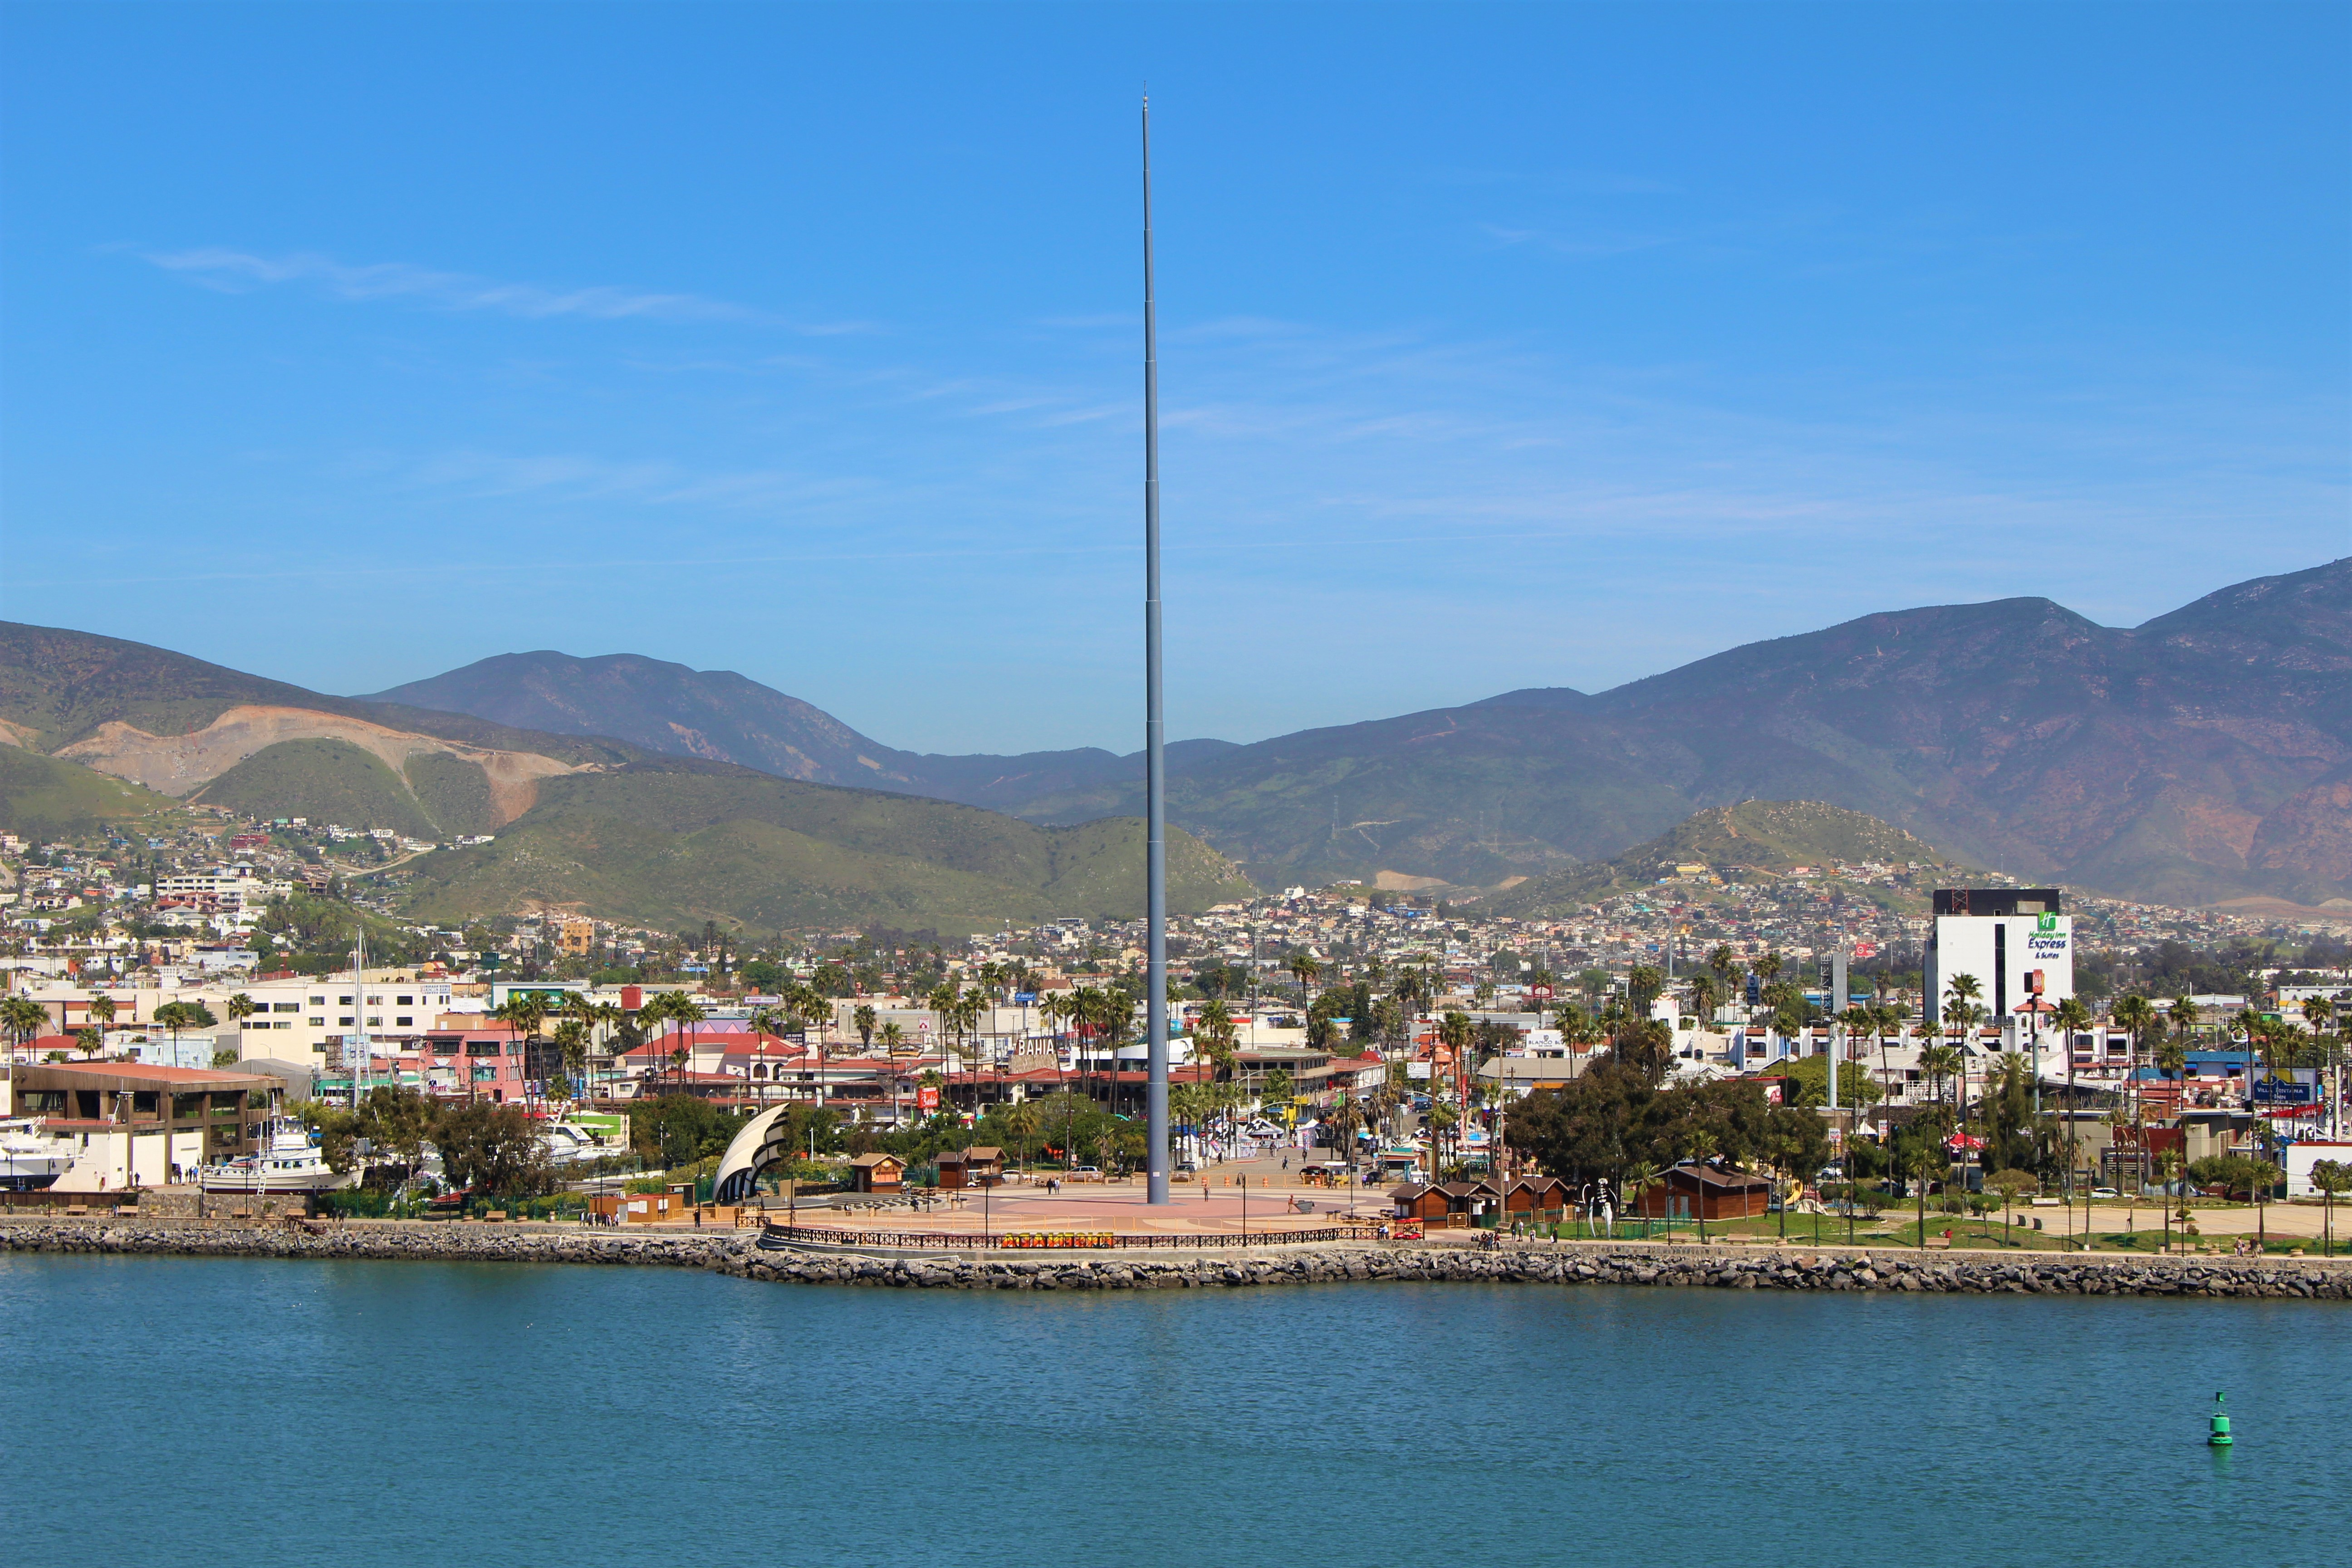 9 Best Things To Do In Ensenada, Baja California, Mexico